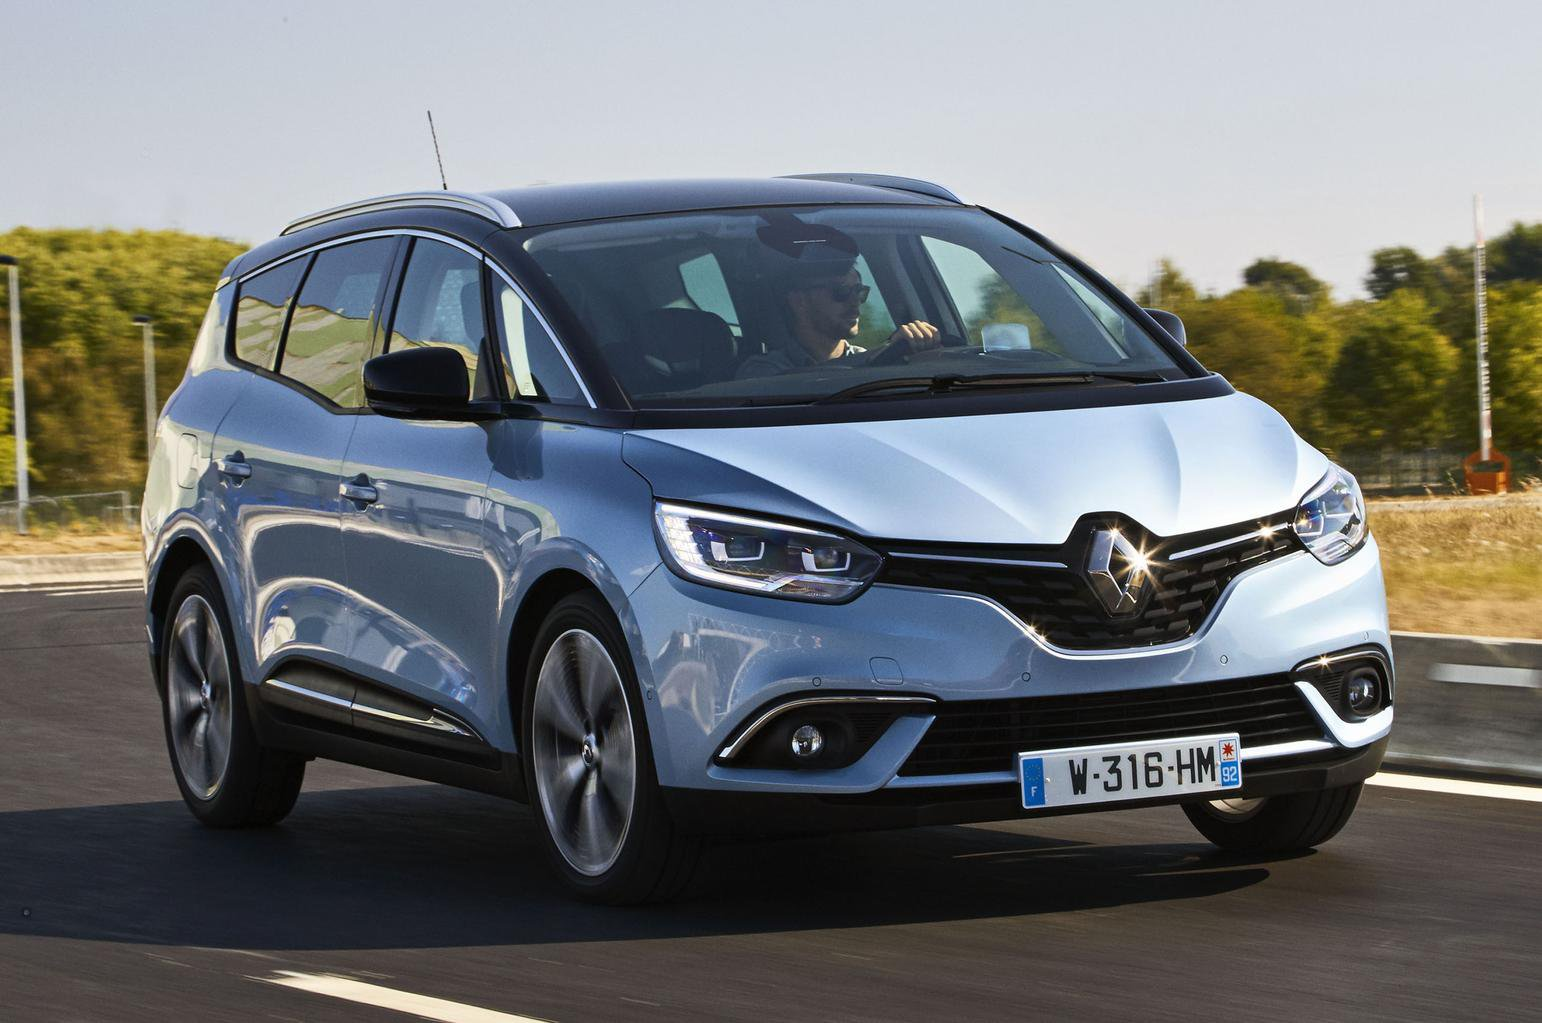 2016 Renault Grand Scenic 1.6 dCi 160 review